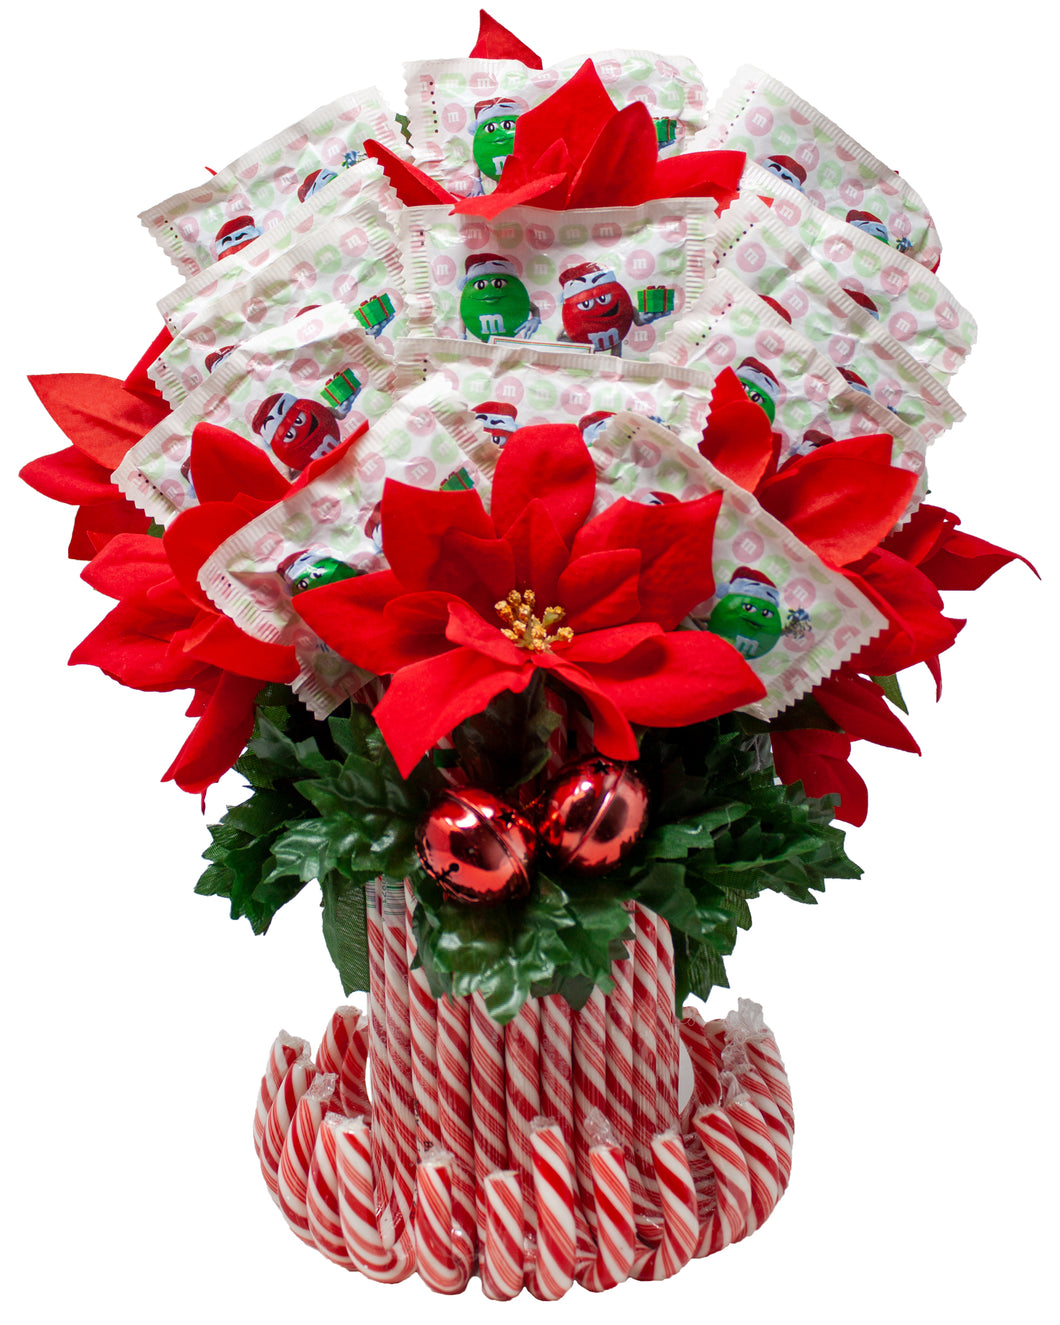 M&M Candy Cane Arrangement with Faux Poinsettias